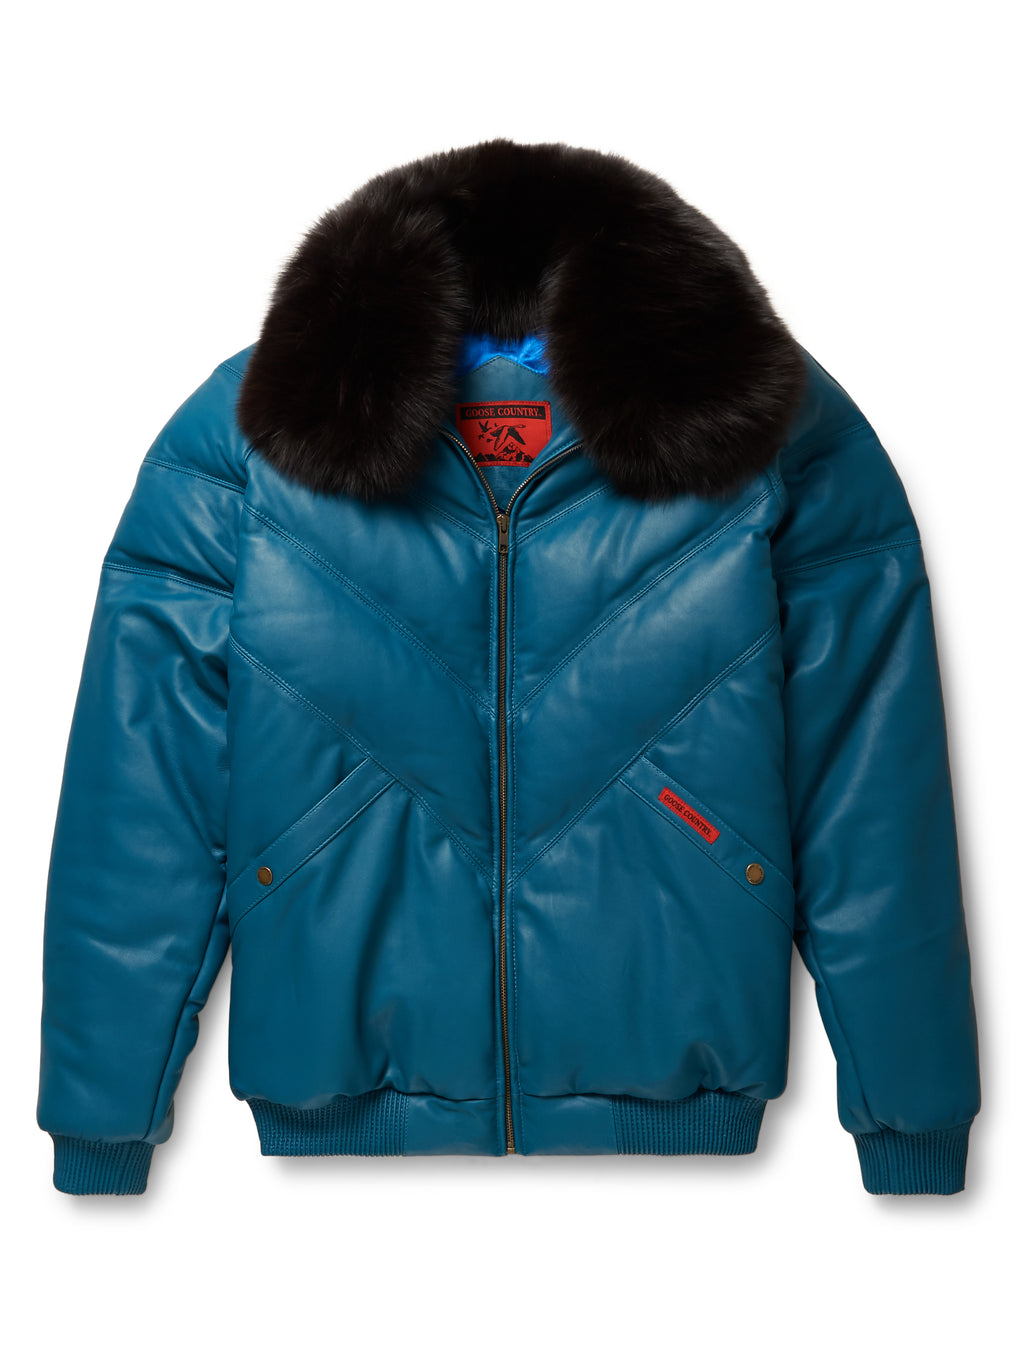 Goose Country V-Bomber: Teal Leather